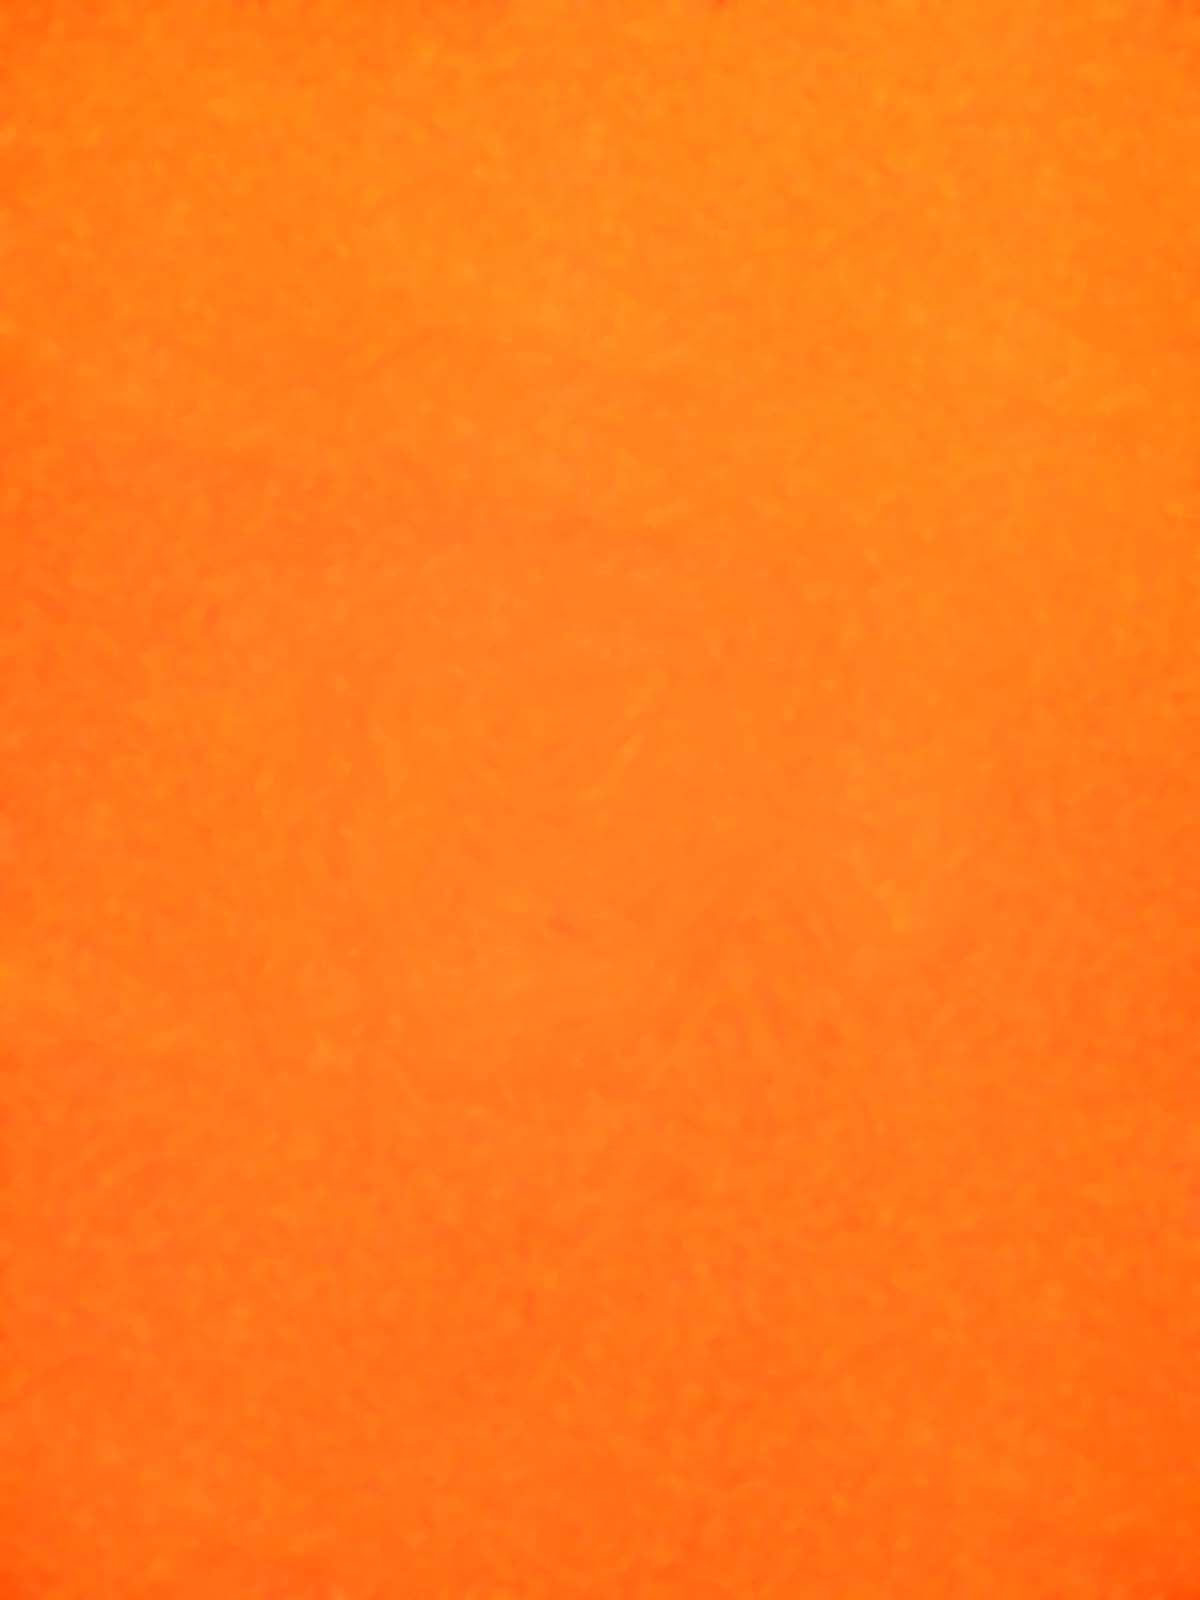 Orange , 2007, huile sur tableau / oil on painting, 7' X 5' 6'', 2,14 X 1,68 m.